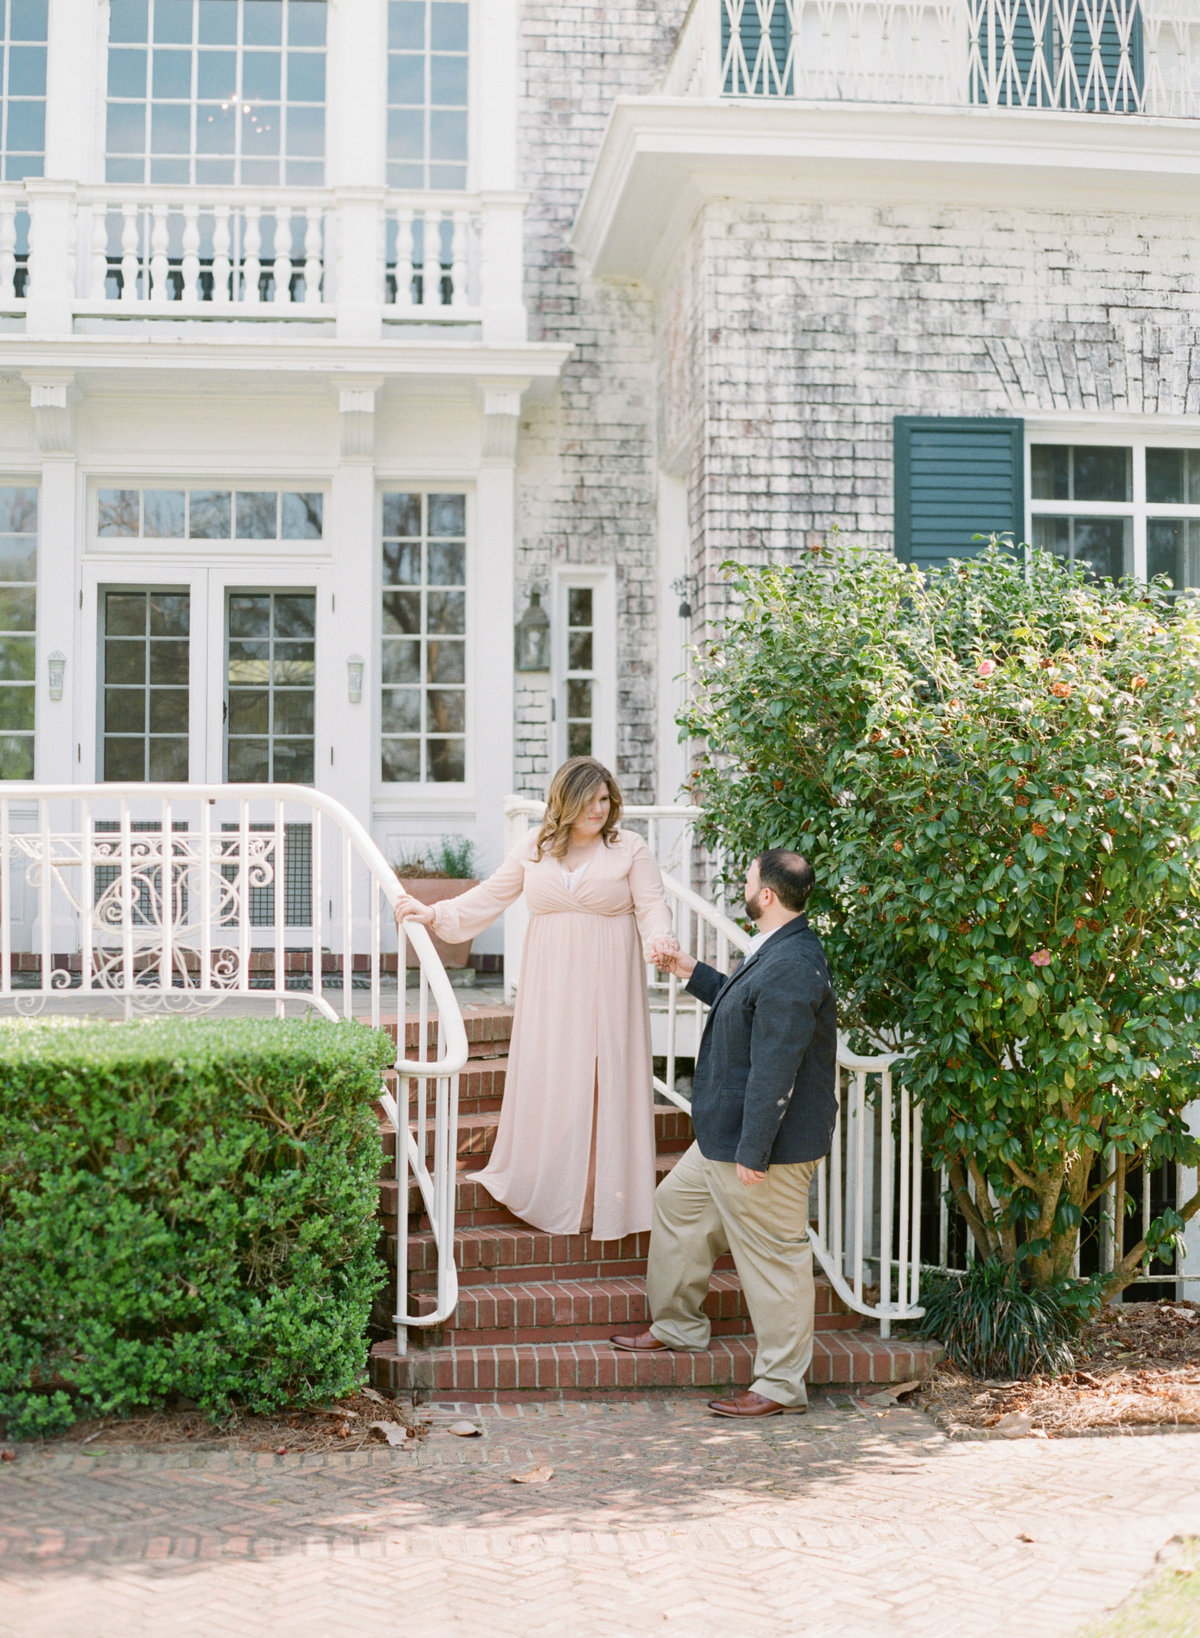 CourtneyWoodhamPhoto-91